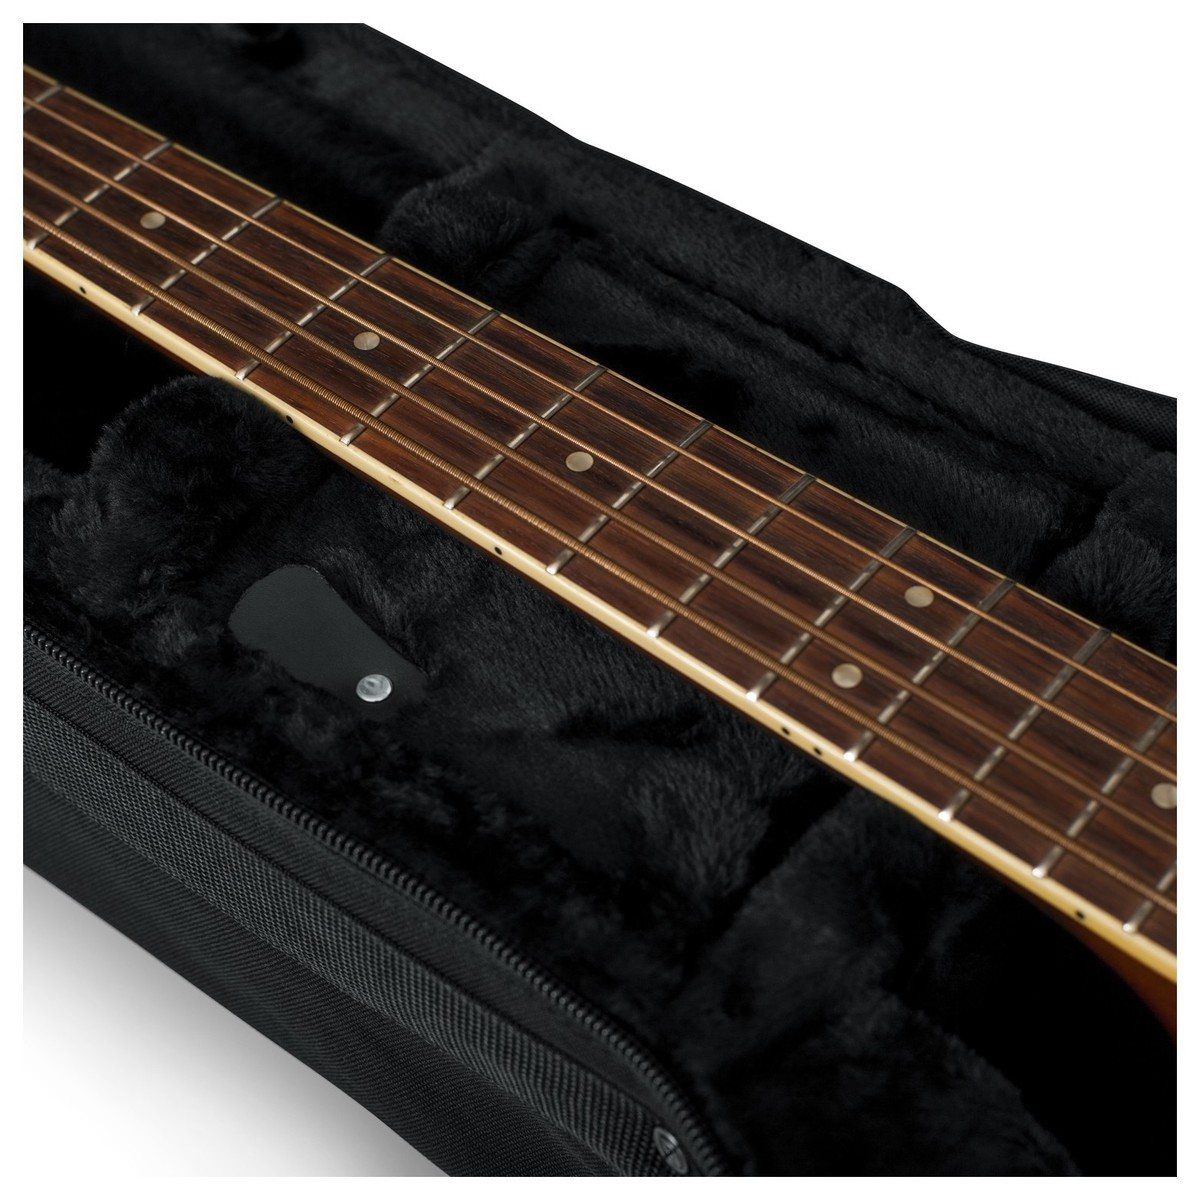 Lovely 4pdt Switch Schematic Big Two Humbuckers 5 Way Switch Flat Bbbind Catalog Car Security System Wiring Diagram Young One Humbucker One Volume Wiring SoftHot Rod Wiring Diagram Download Gator GL AC BASS Rigid EPS Acoustic Bass Guitar Case At Gear4music